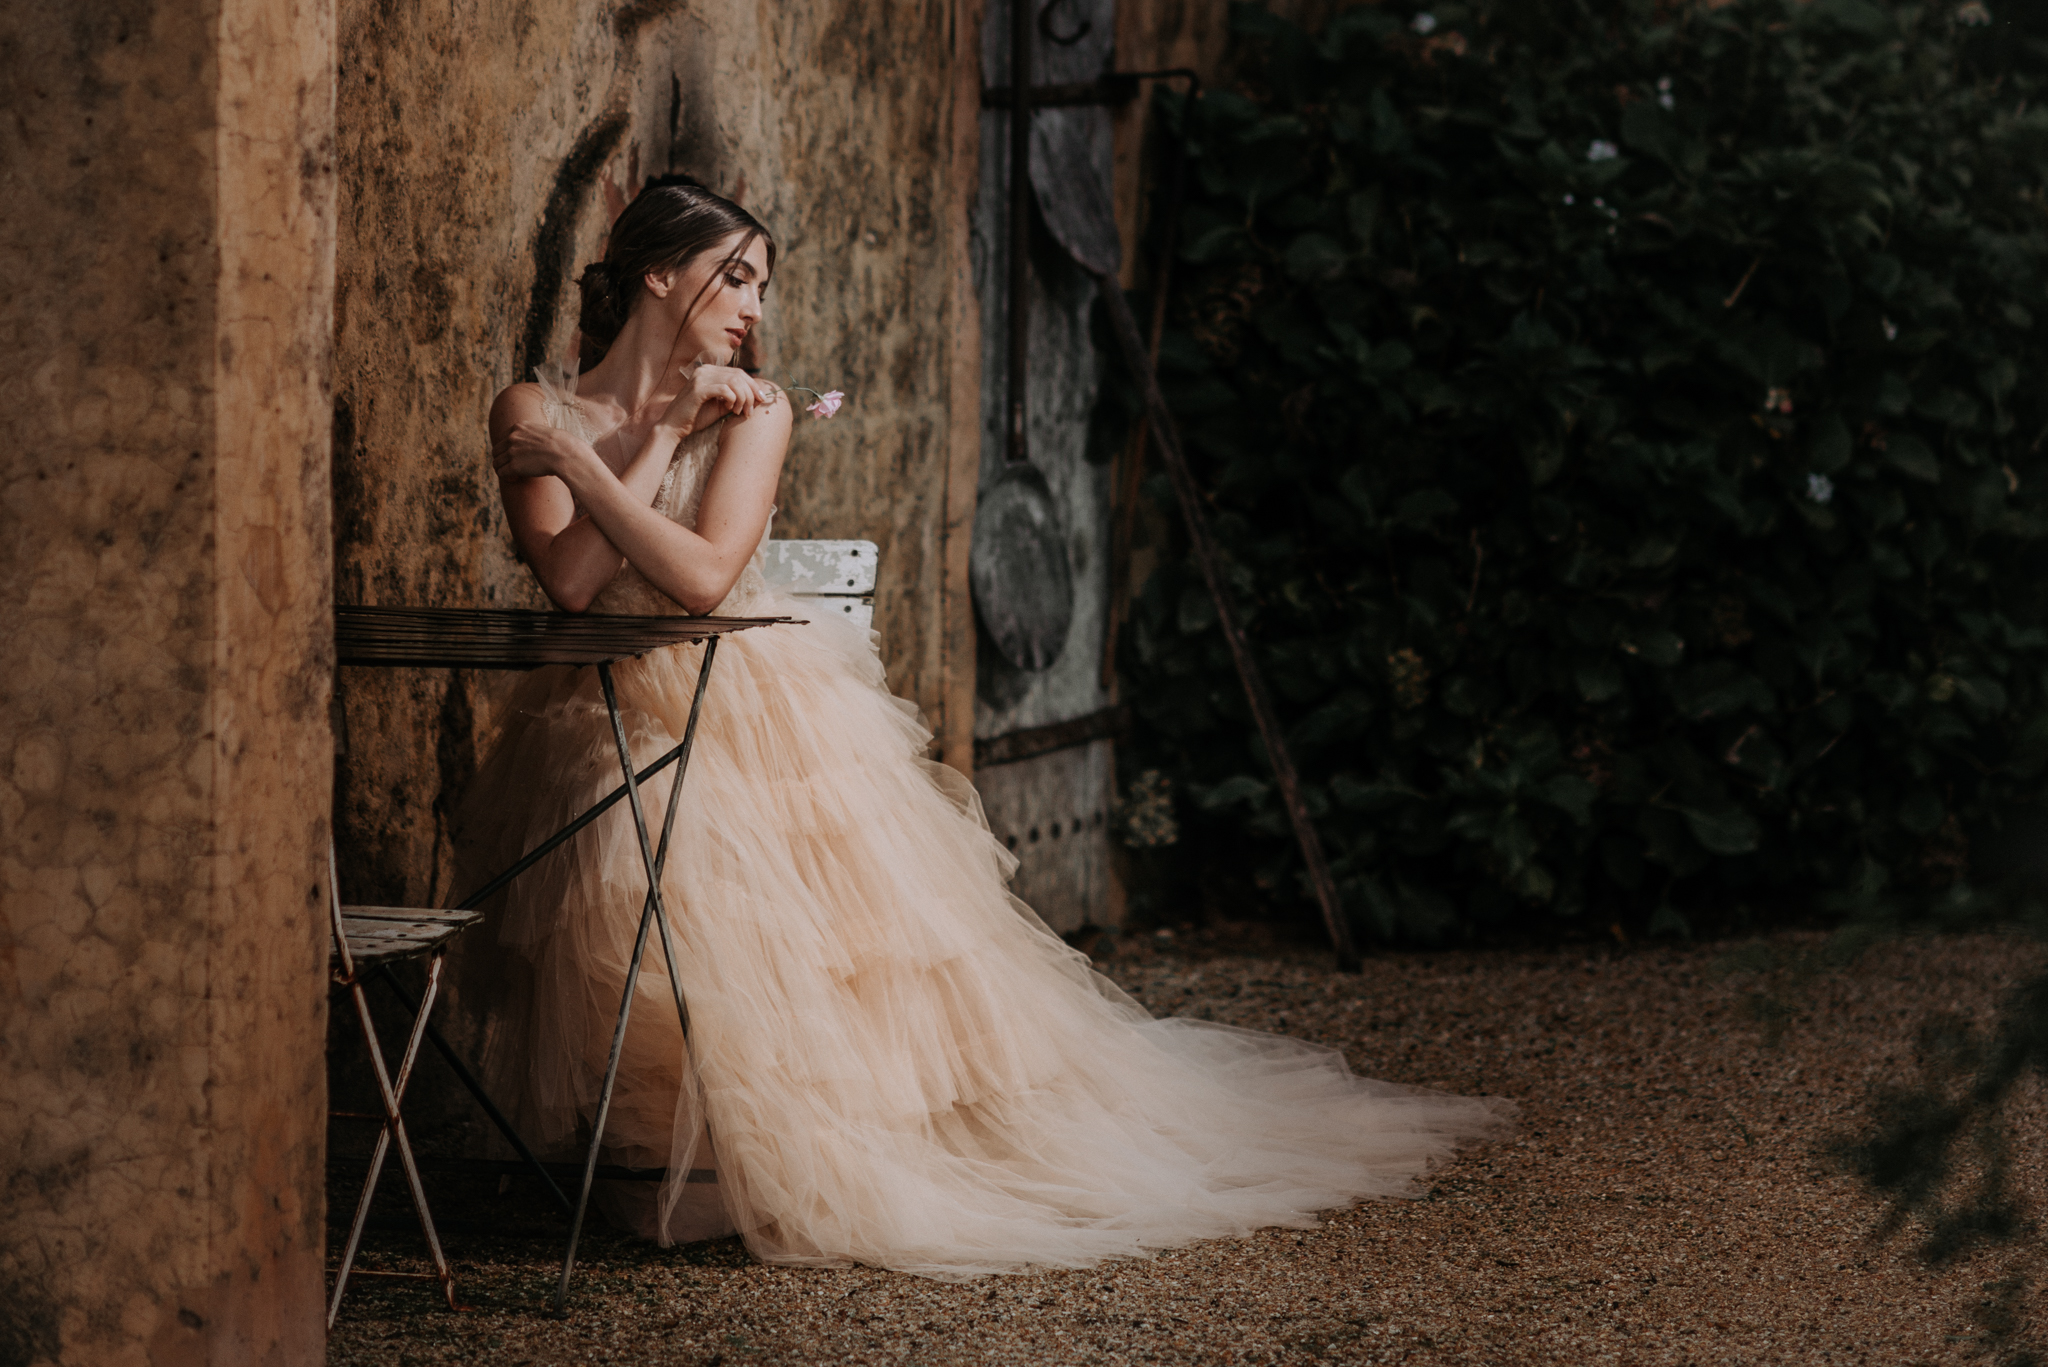 Lovelenscapes Photography X Ulyana Aster Bridal • Les Deux Belettes • Leigh McCoy • Bloodwood Botanica • Alena Iano • Alisa Rudnev • Demi Groot • Jessie Lockley • Maddison Ruby • 156.jpg